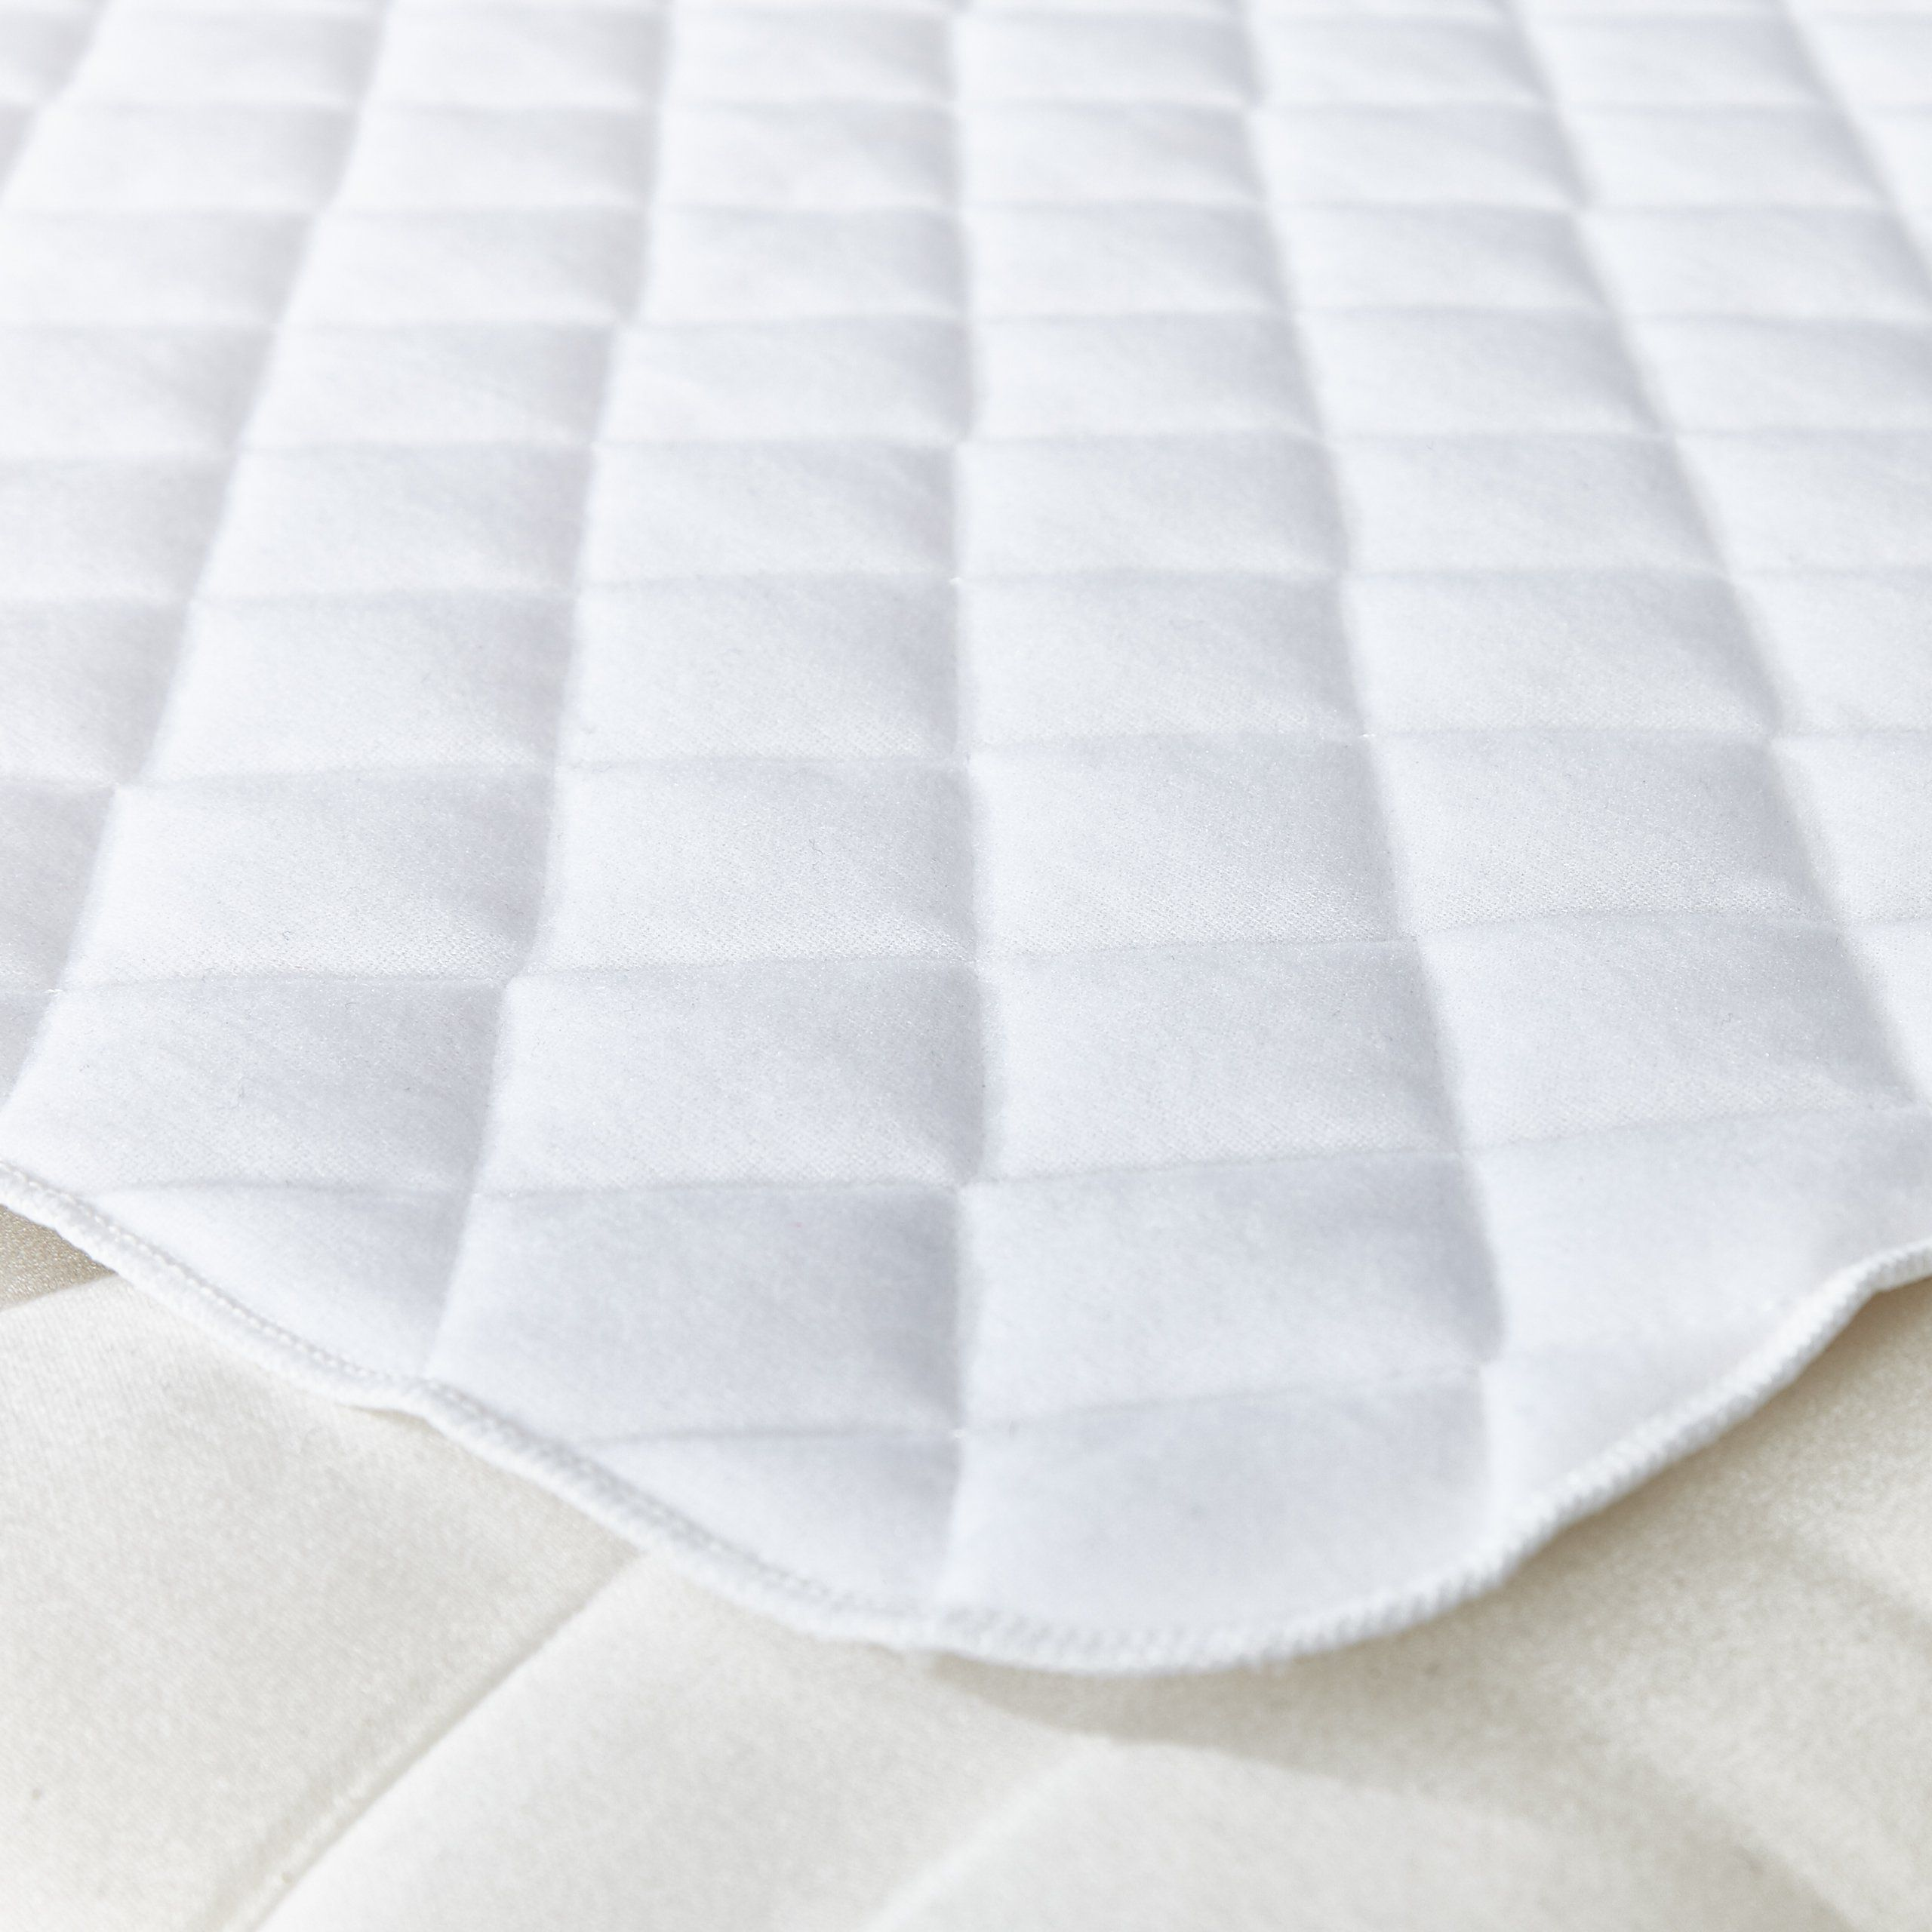 Lumaland bed pads for incontinence or other medical issues